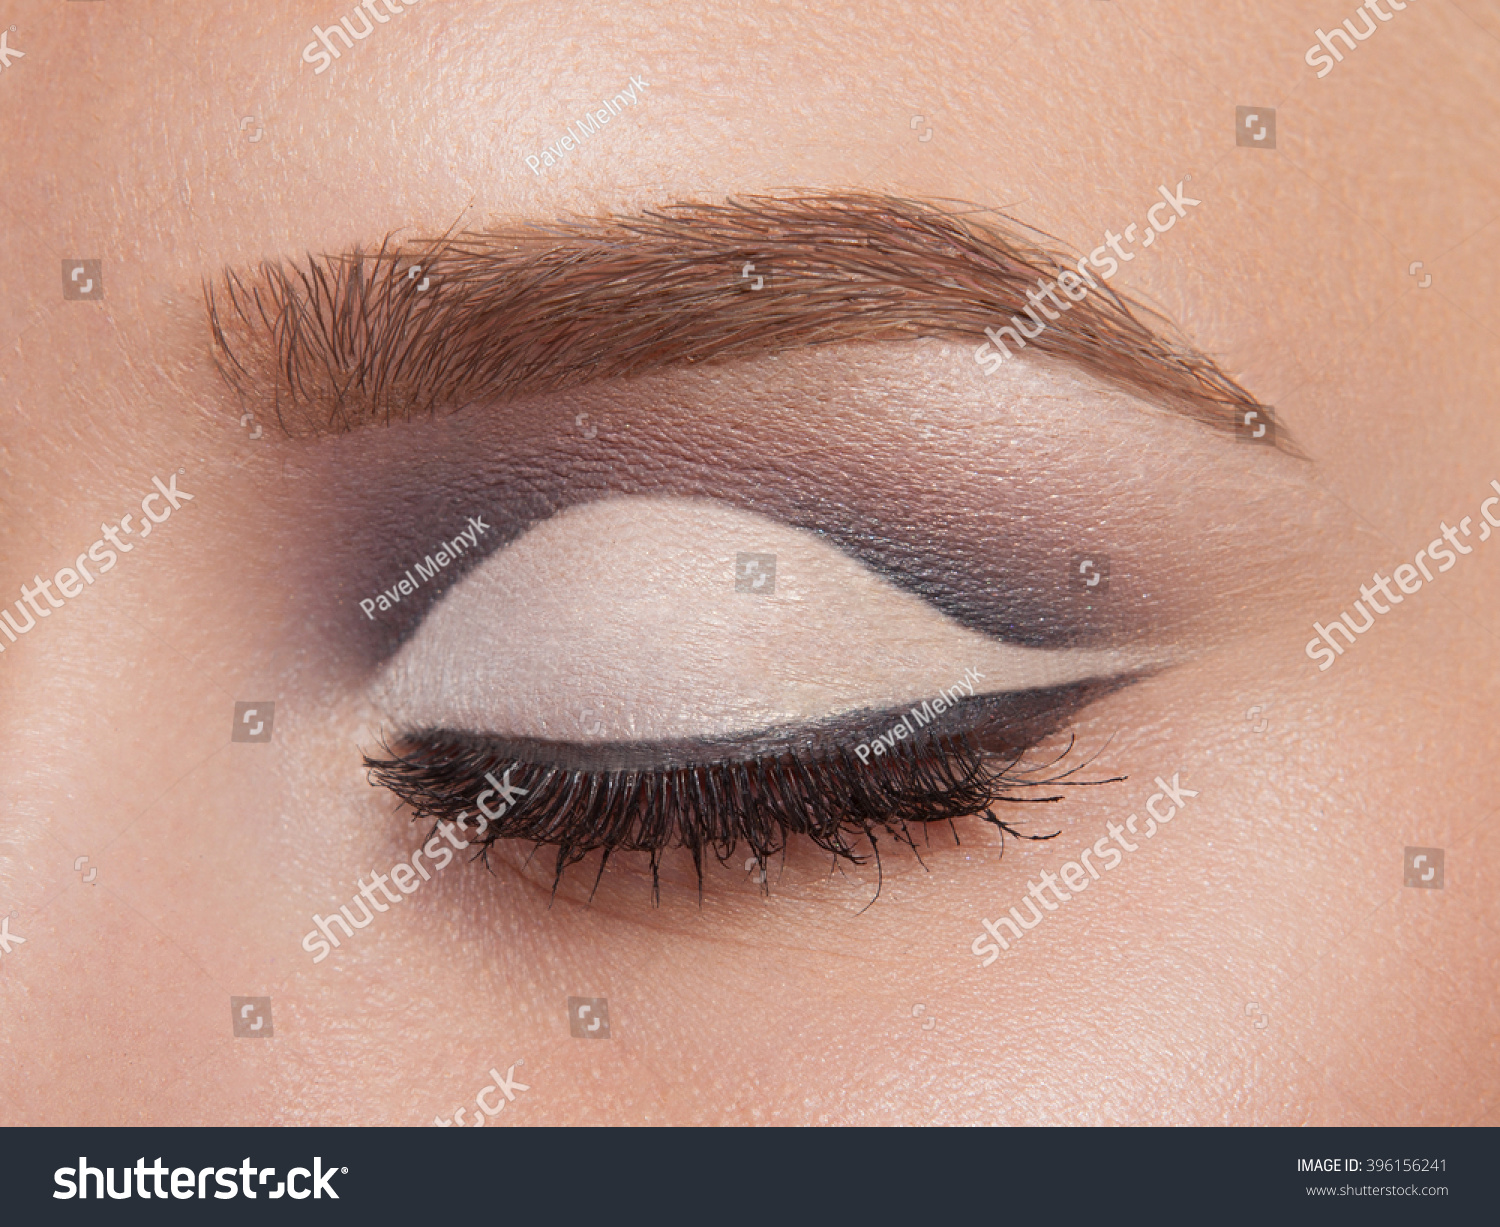 Makeup eye Smokey close up pictures forecast to wear in autumn in 2019